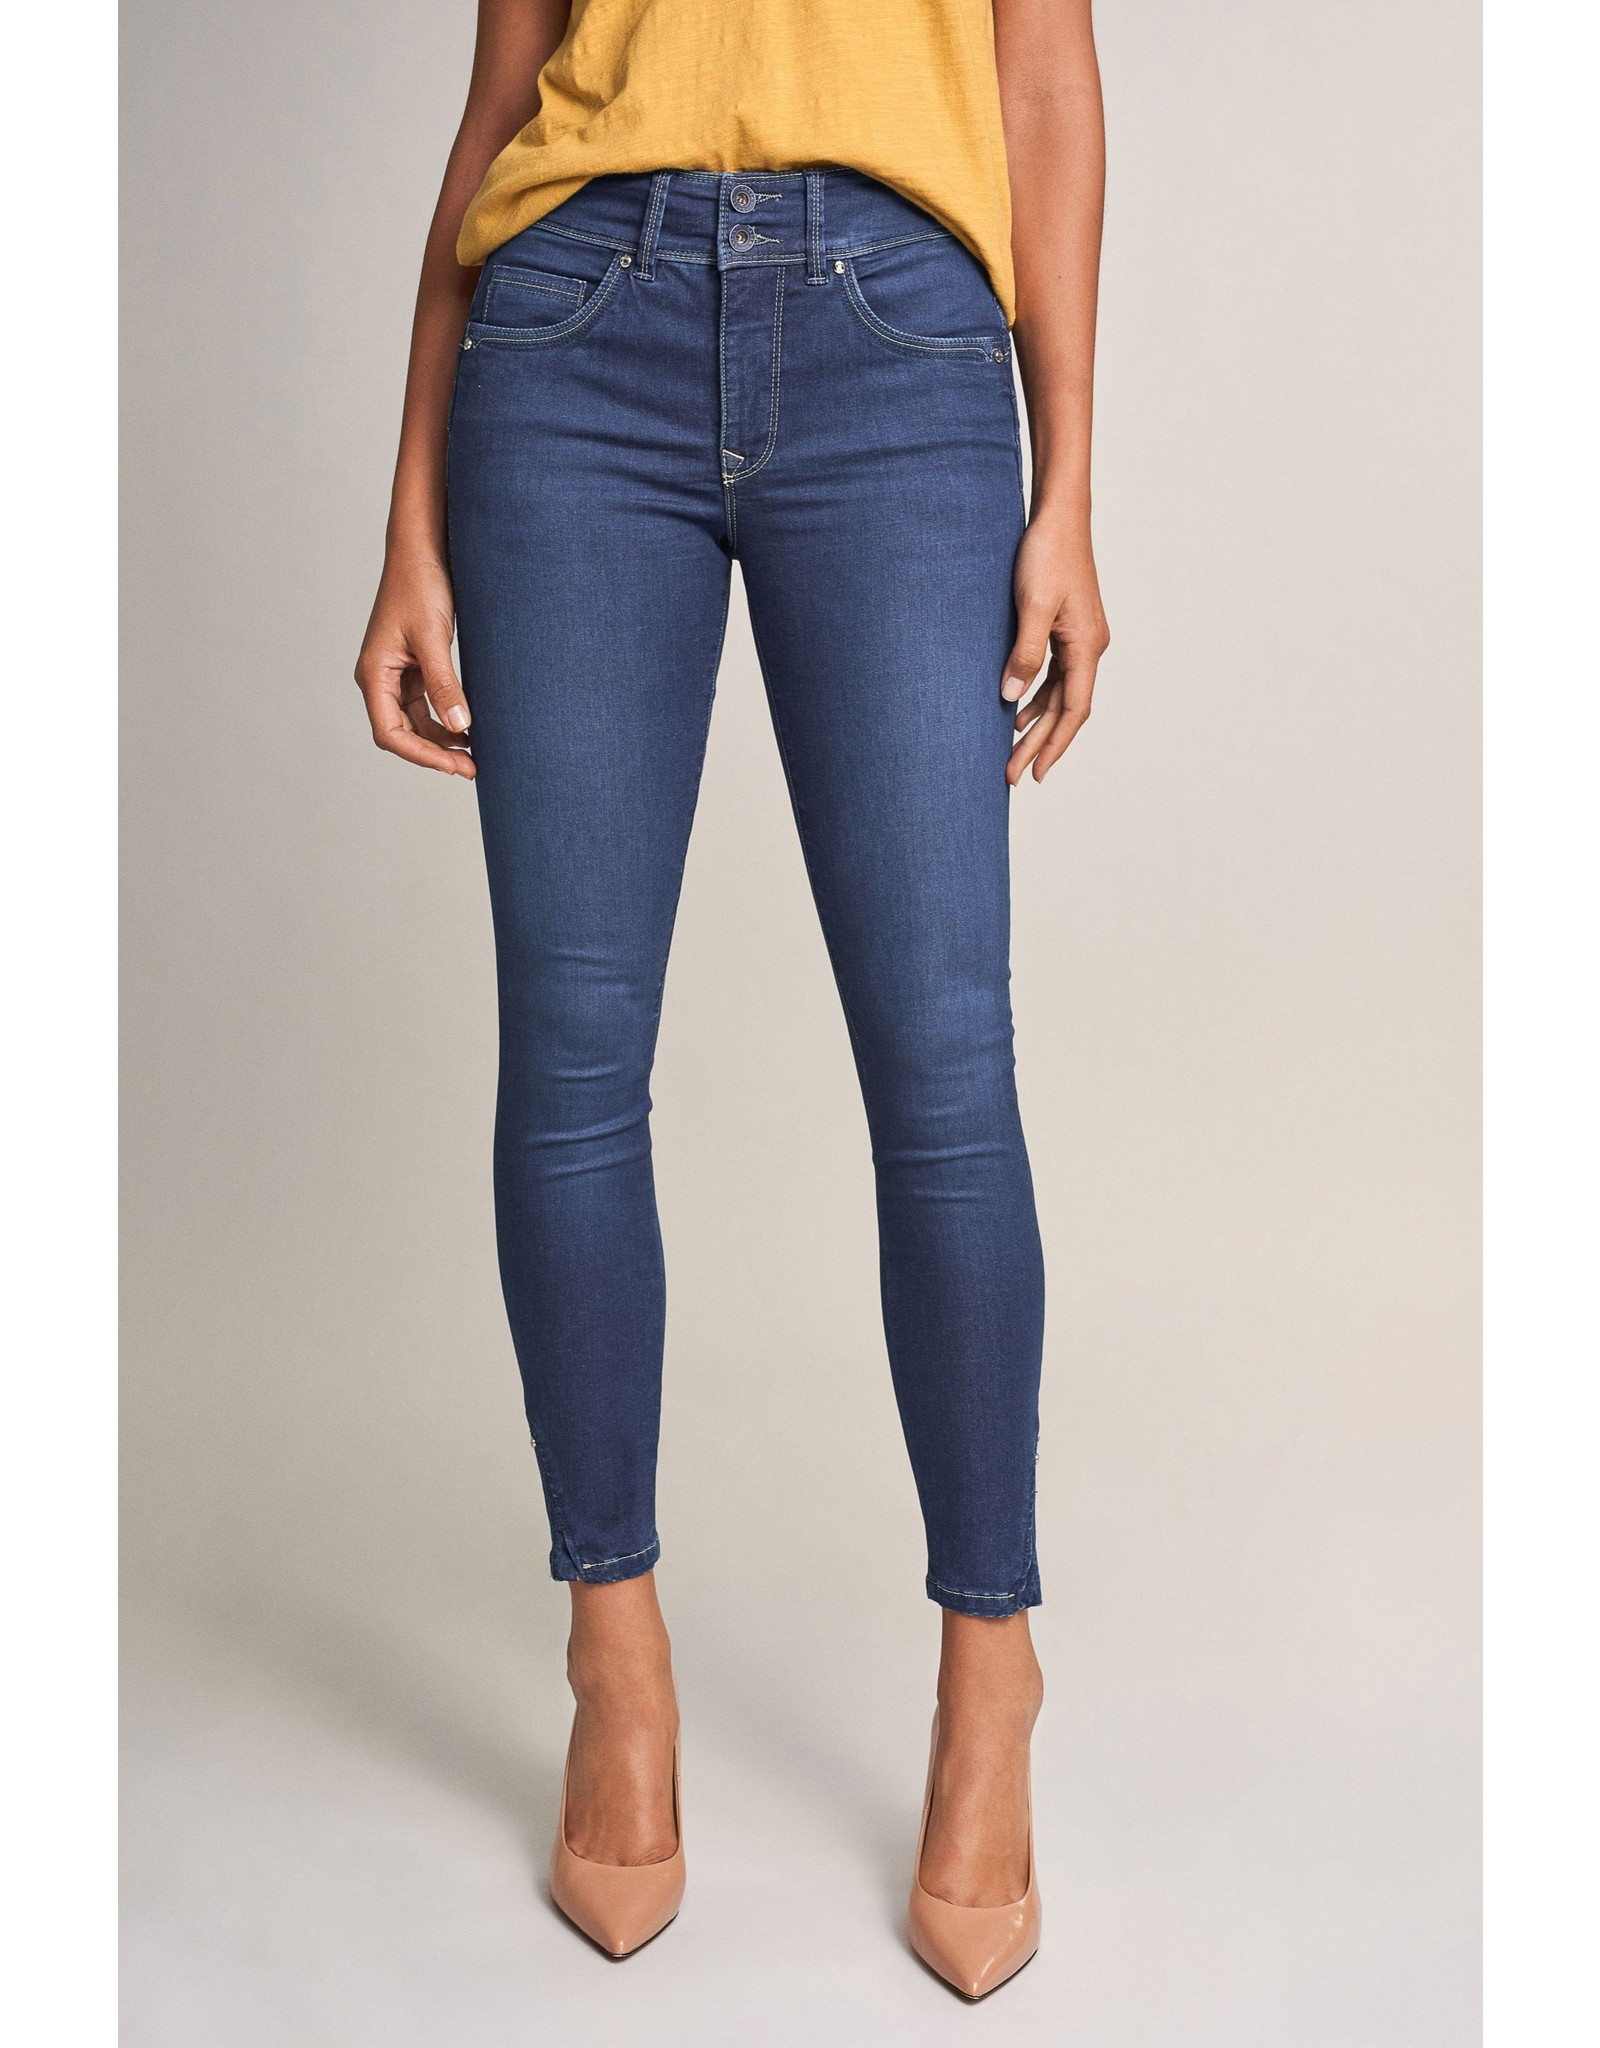 Salsa Jeans Push In Secret Capri Jeans With Studs